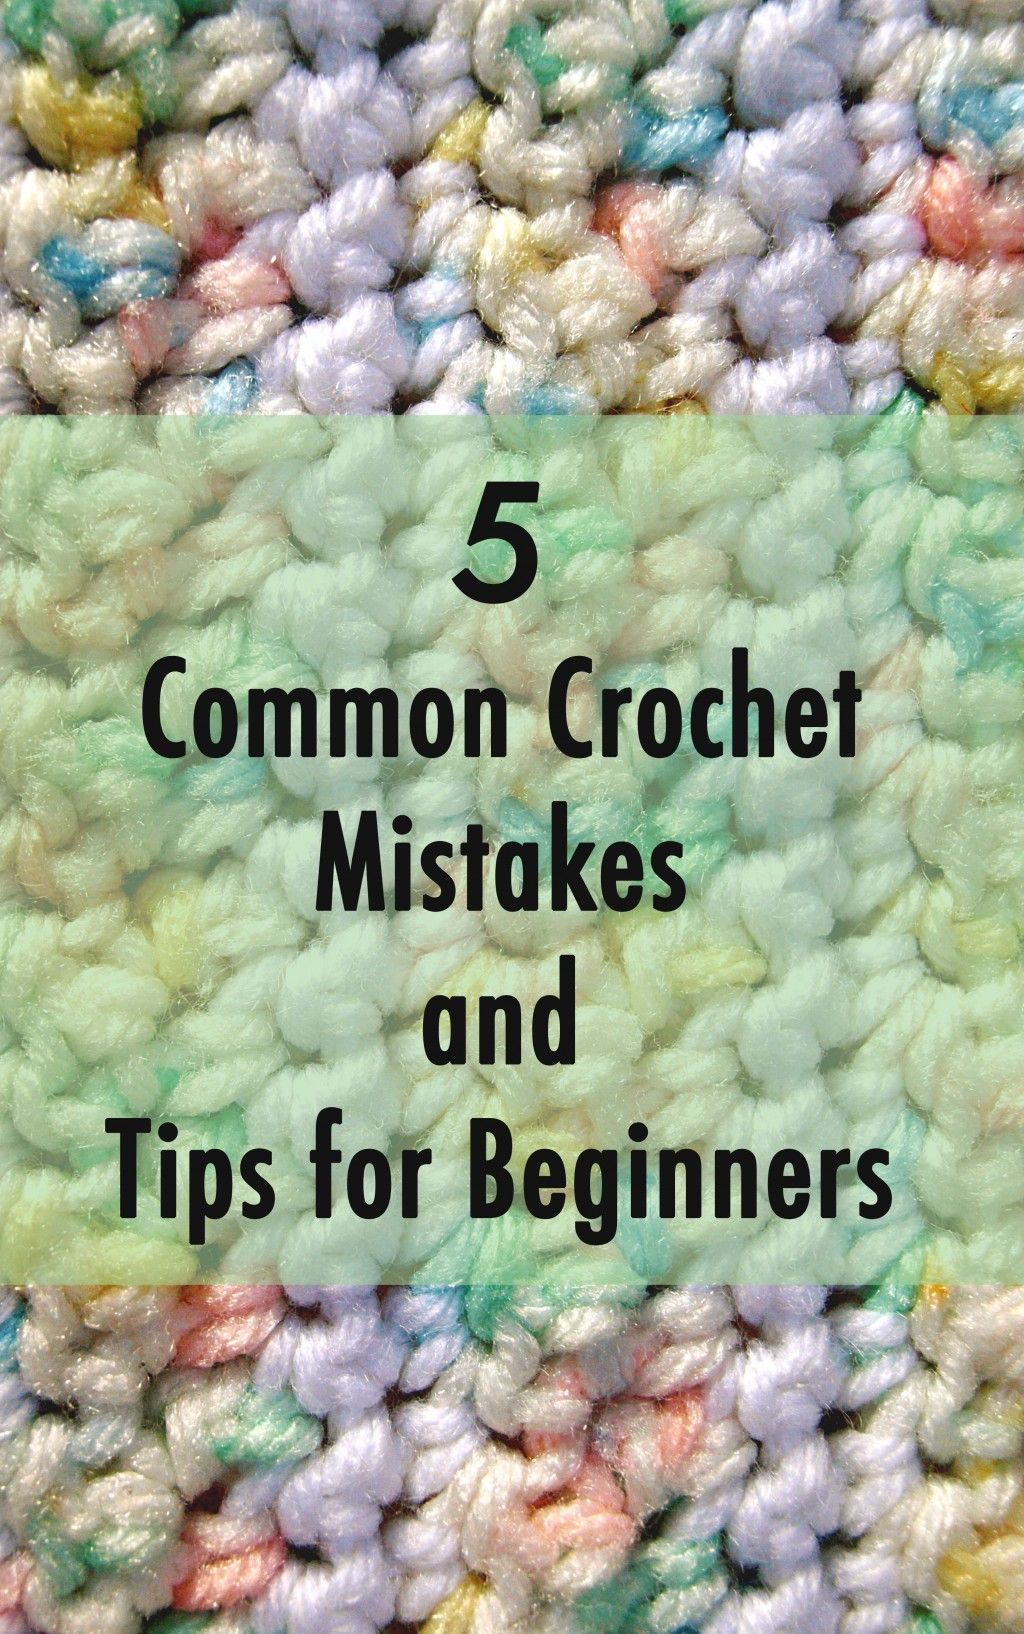 5mon Crochet Mistakes And Tips For Beginners Tutorial  (hubpages)